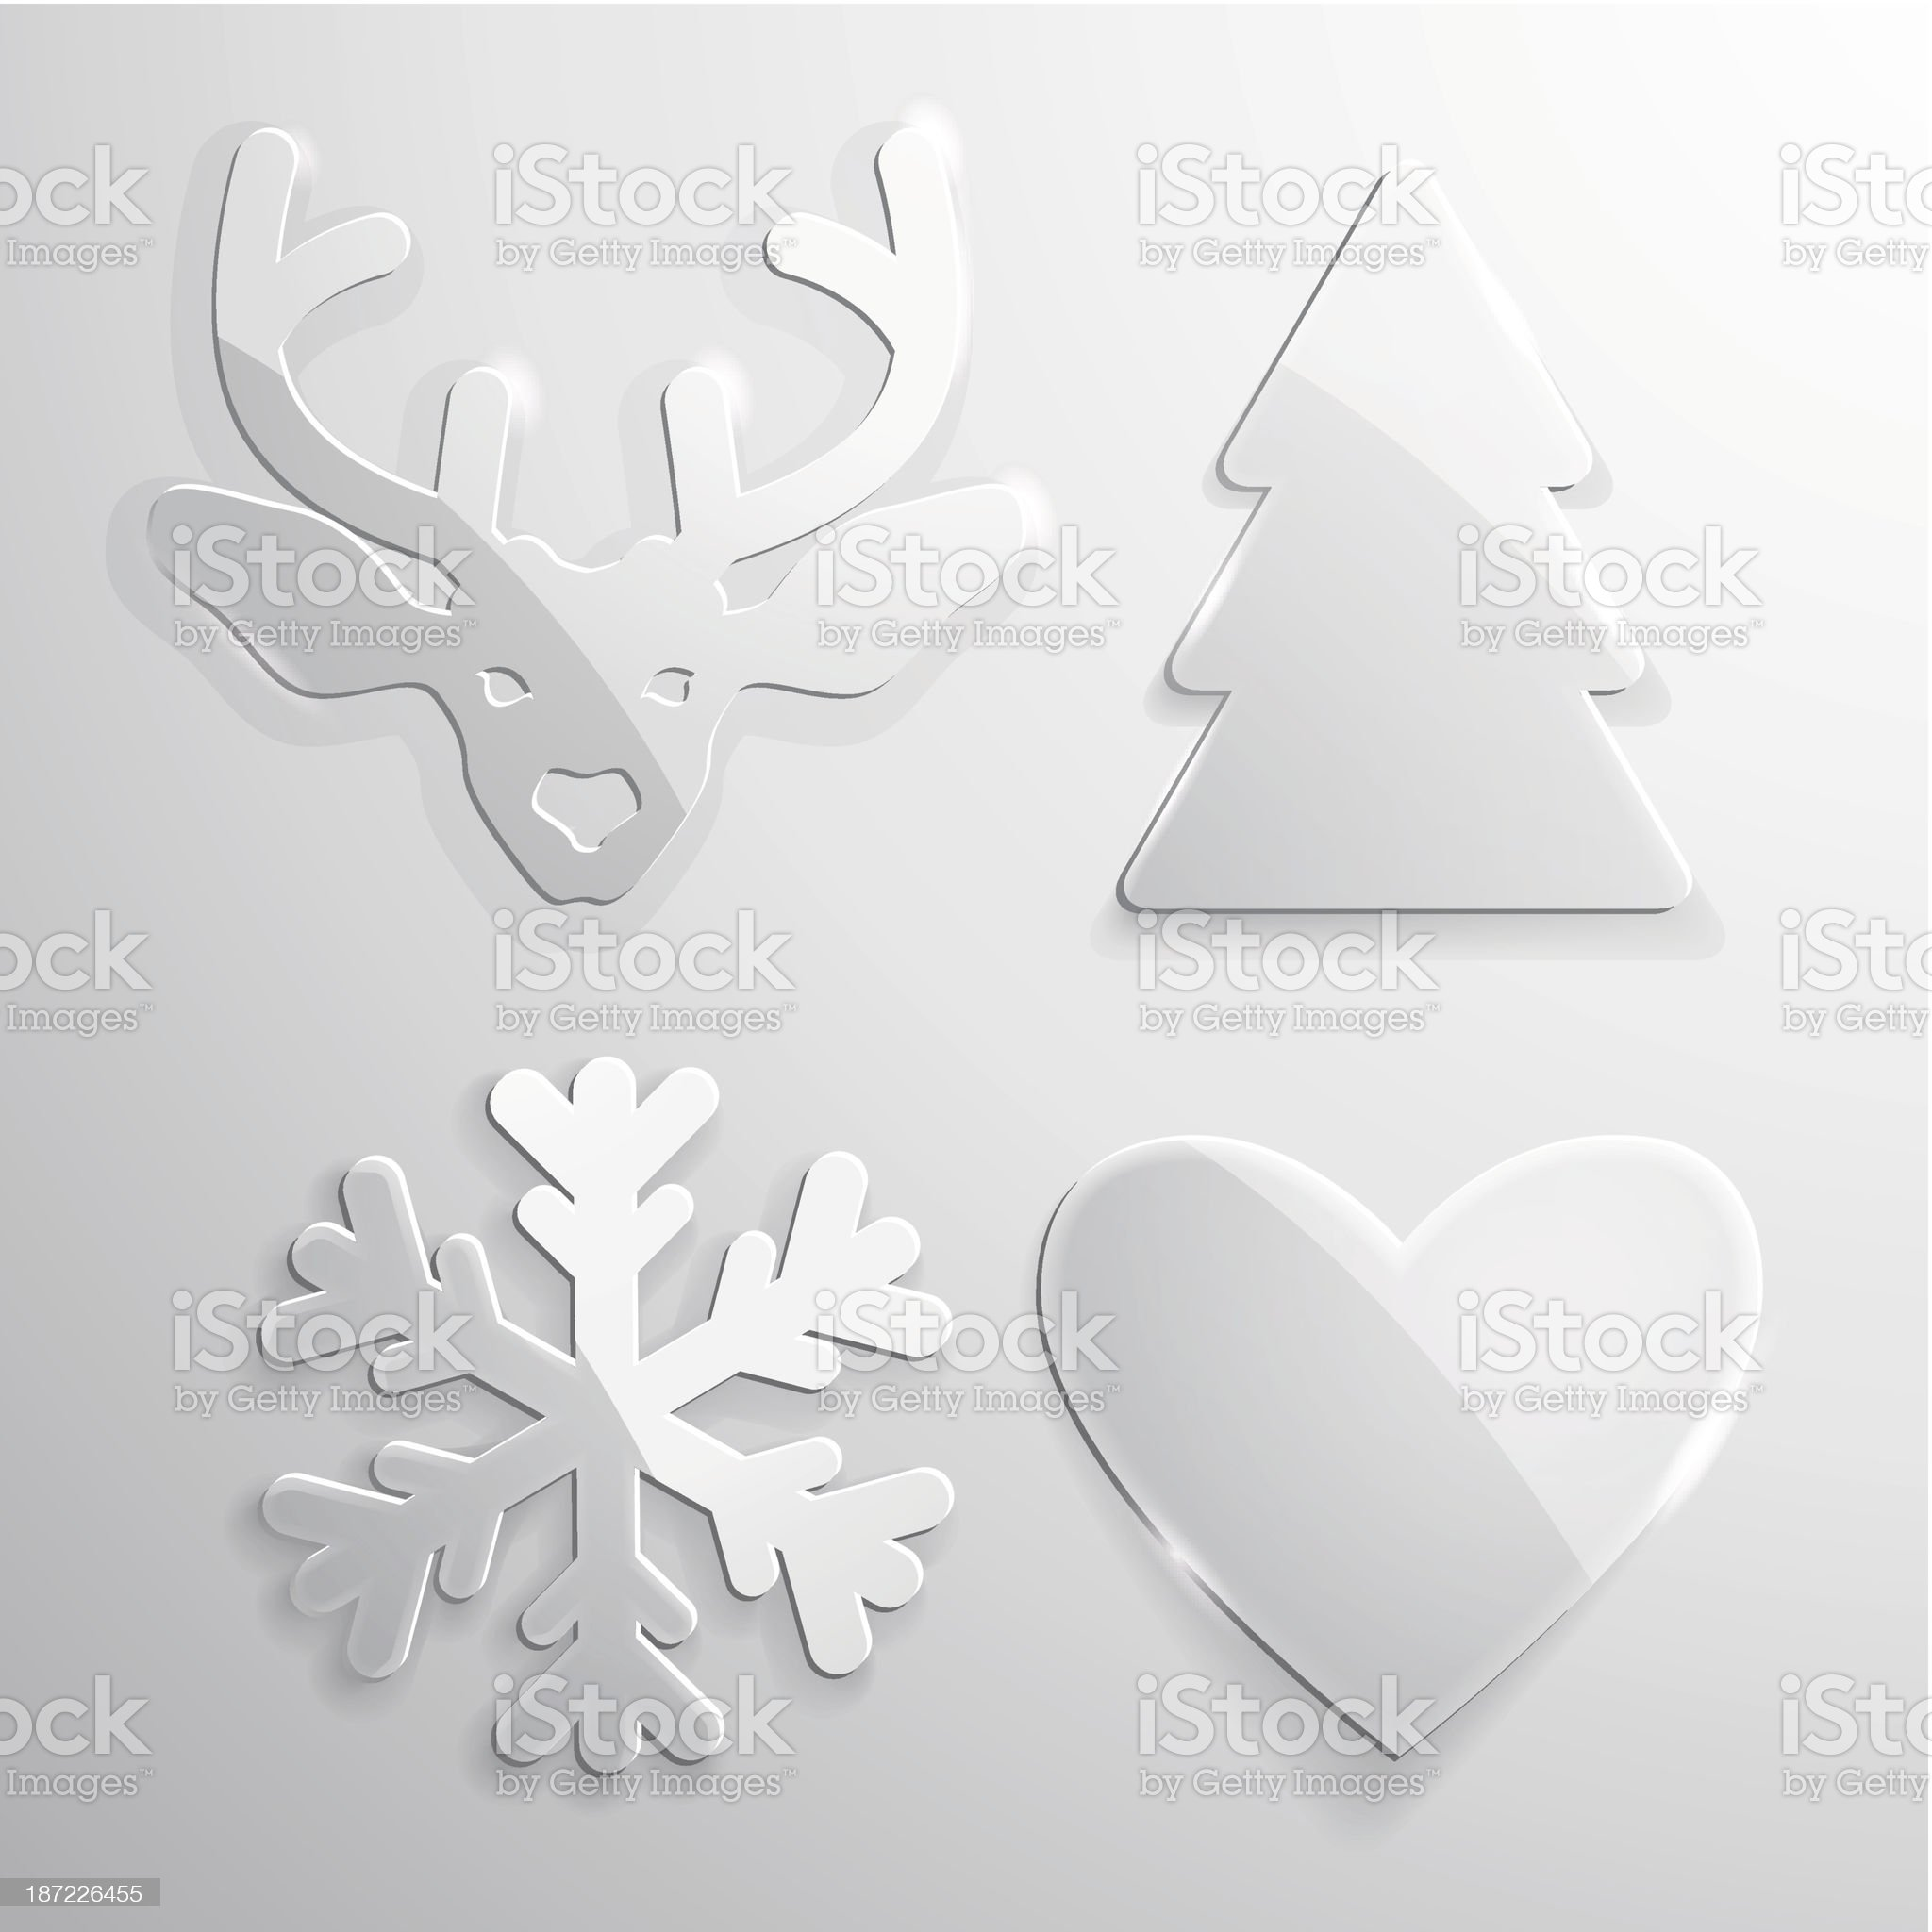 Set of glass Christmas and New Year icons royalty-free stock vector art